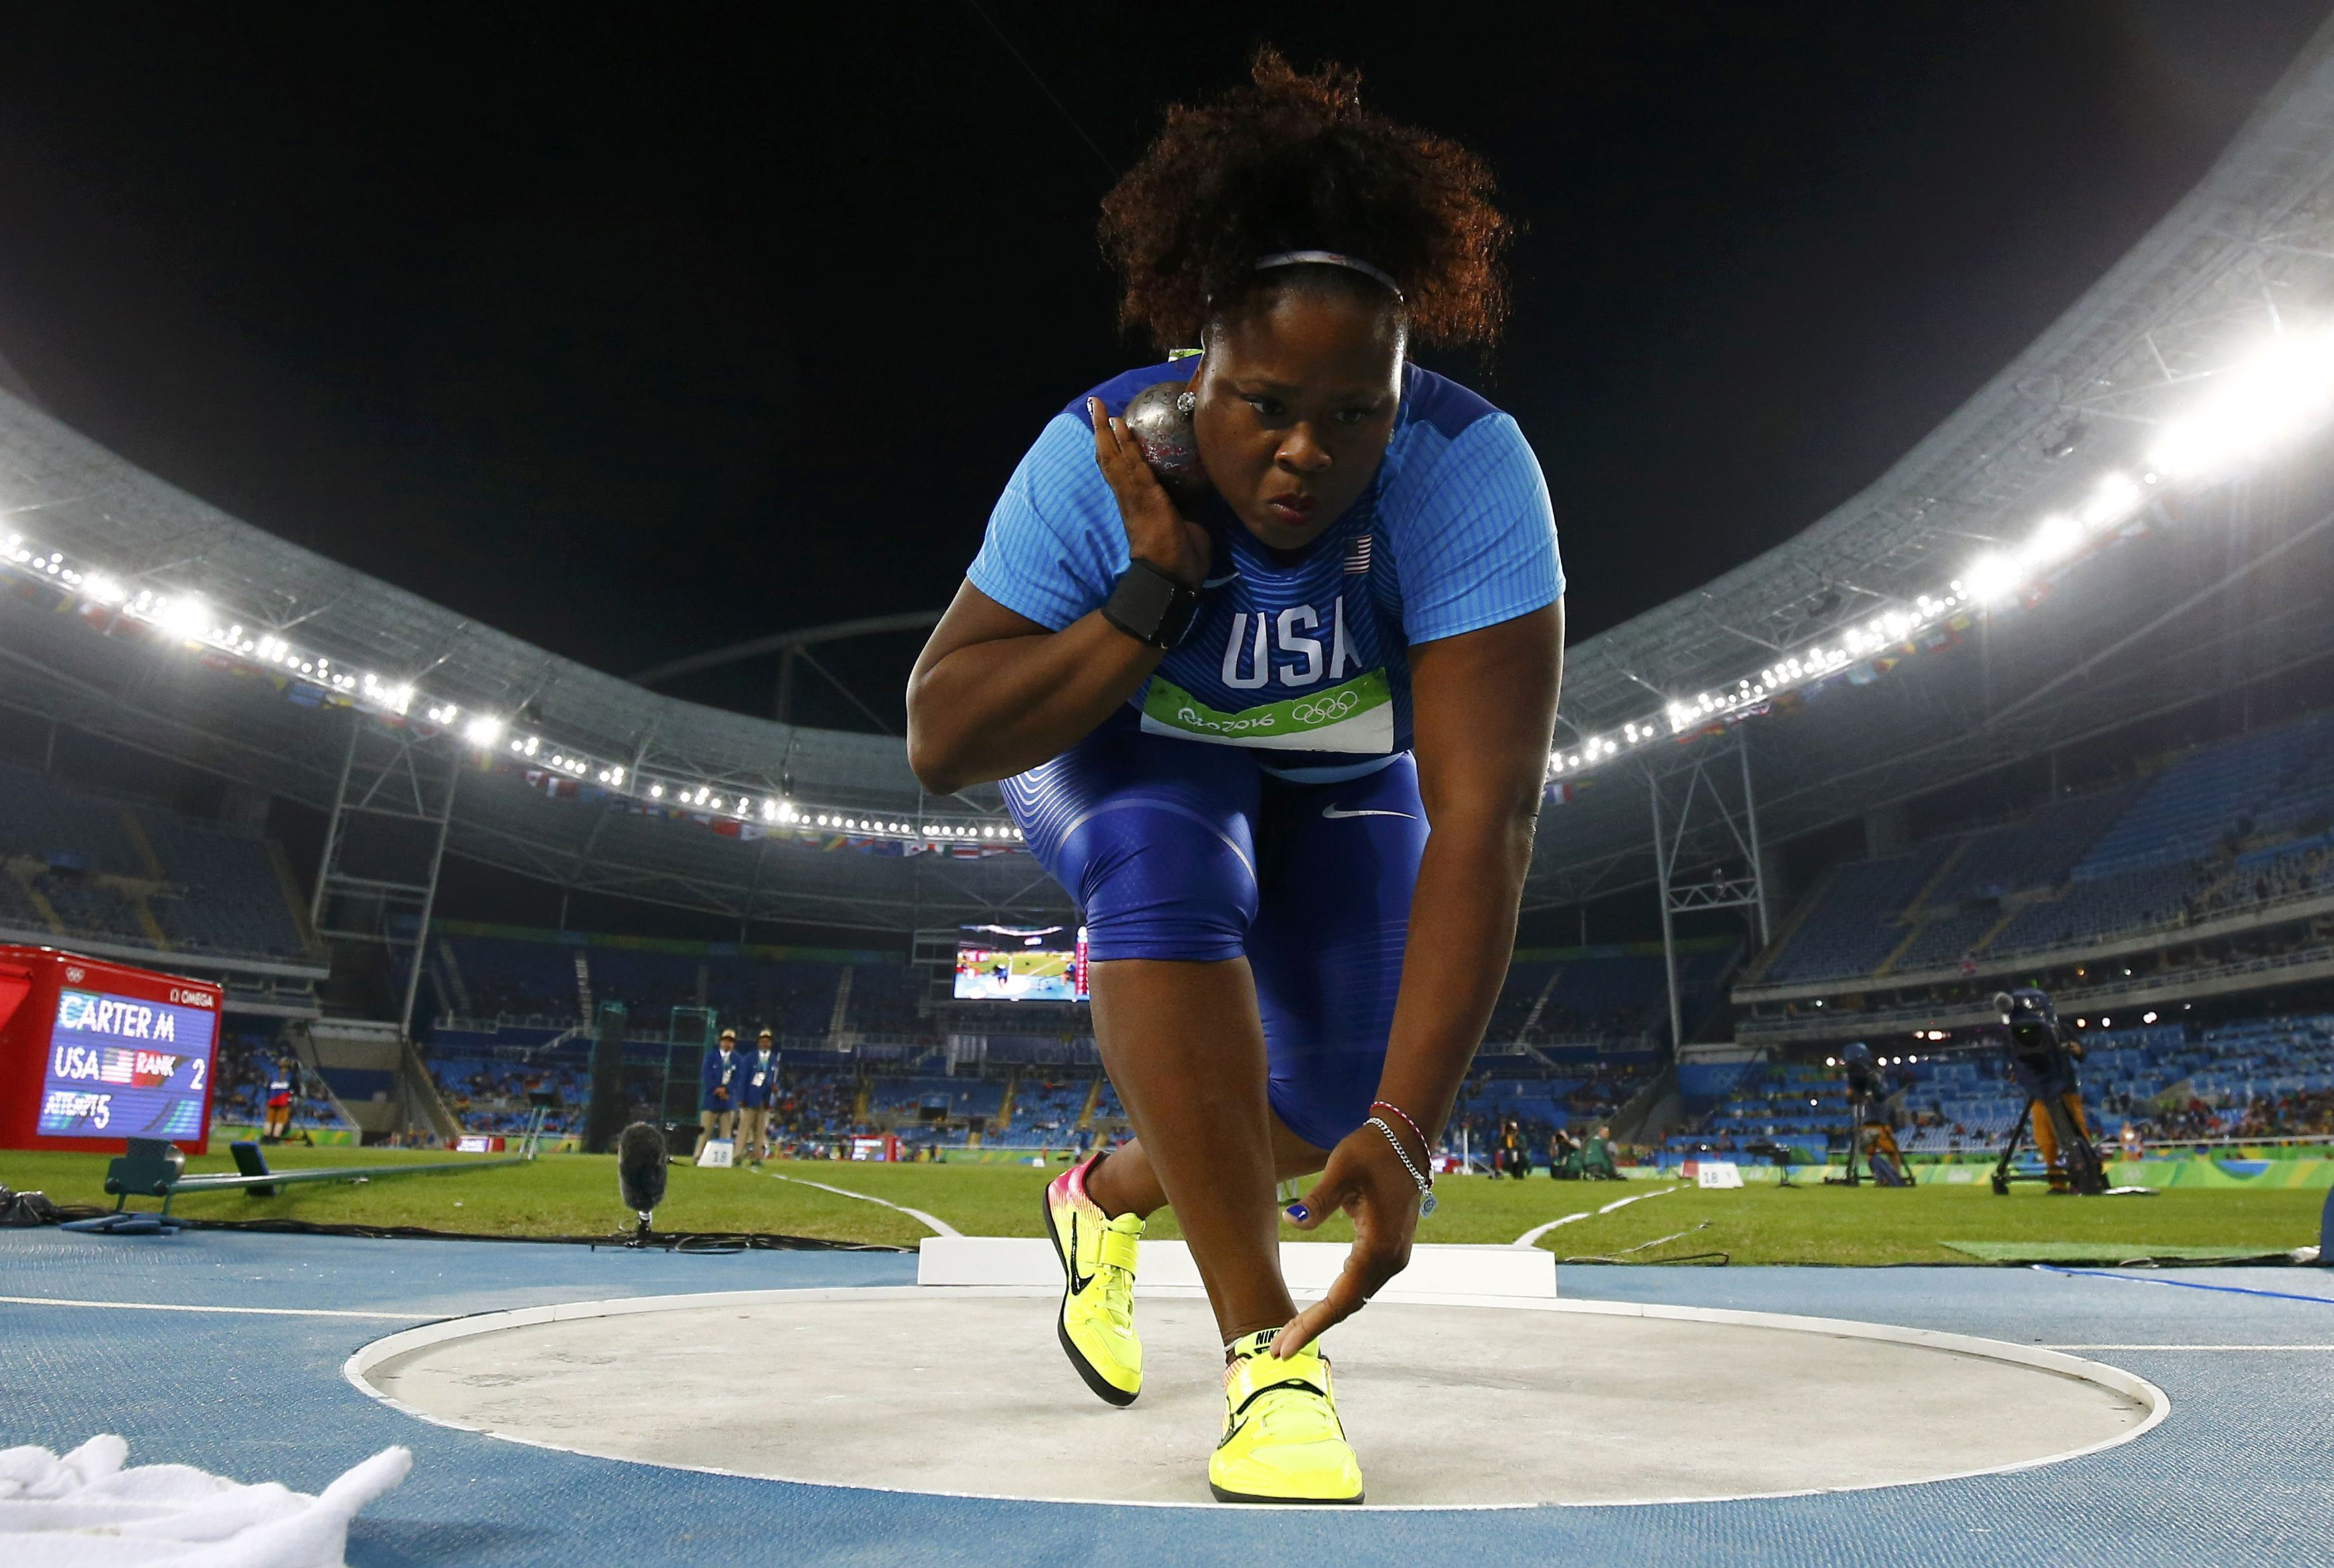 Michelle Carter (USA) of USA competes on her way to the gold medal in the women's shot put.